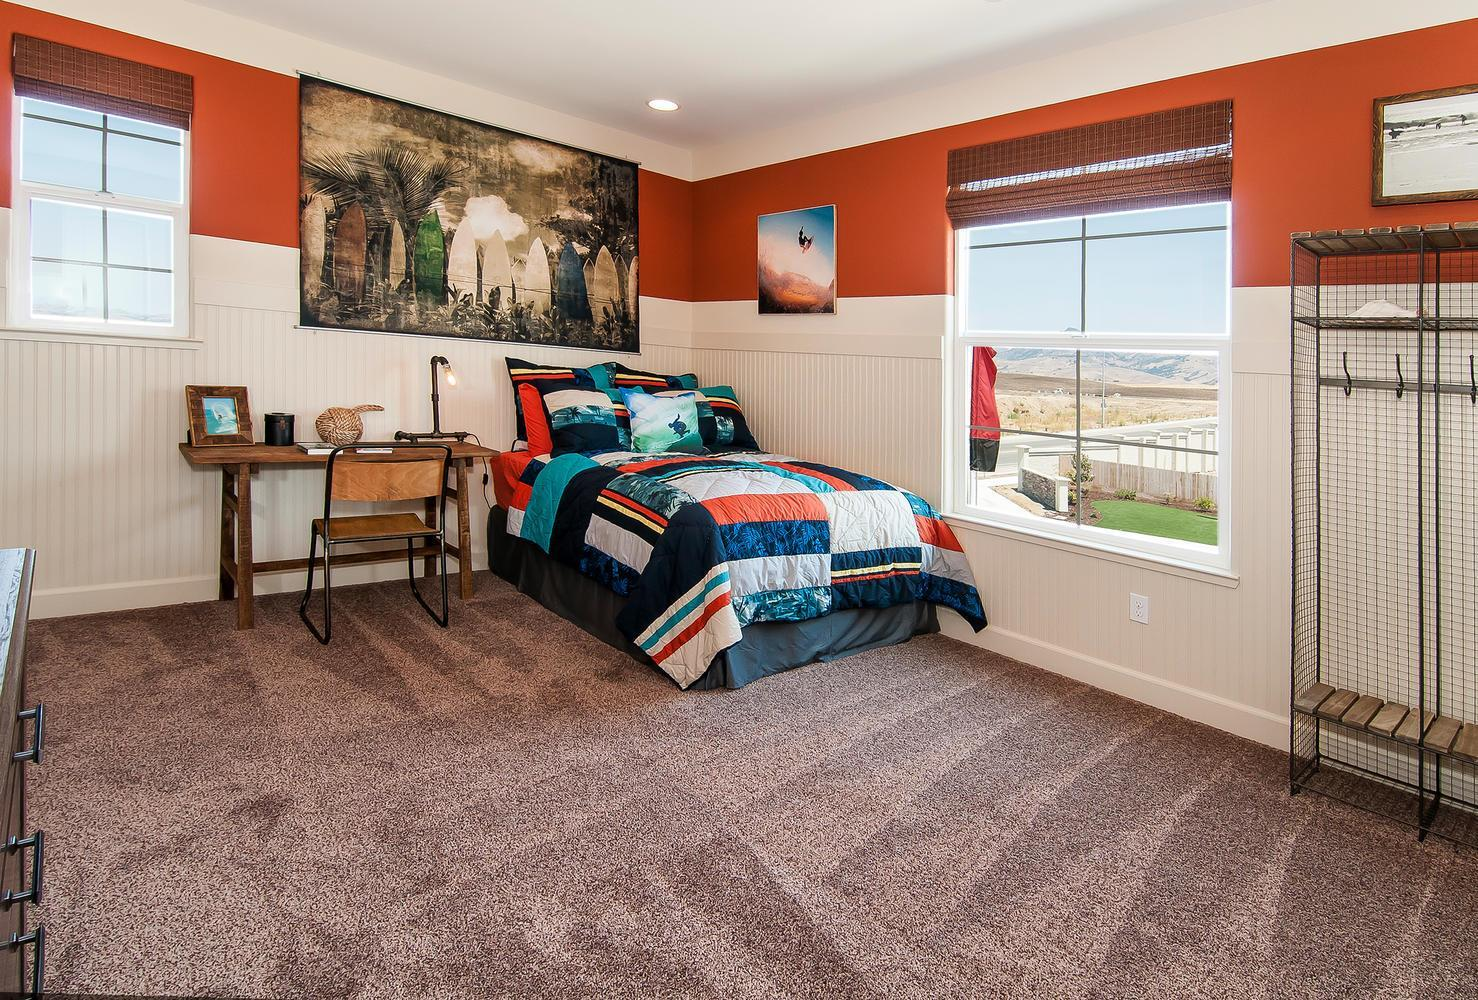 Bedroom featured in the Residence 7 By Legacy Homes in Santa Cruz, CA